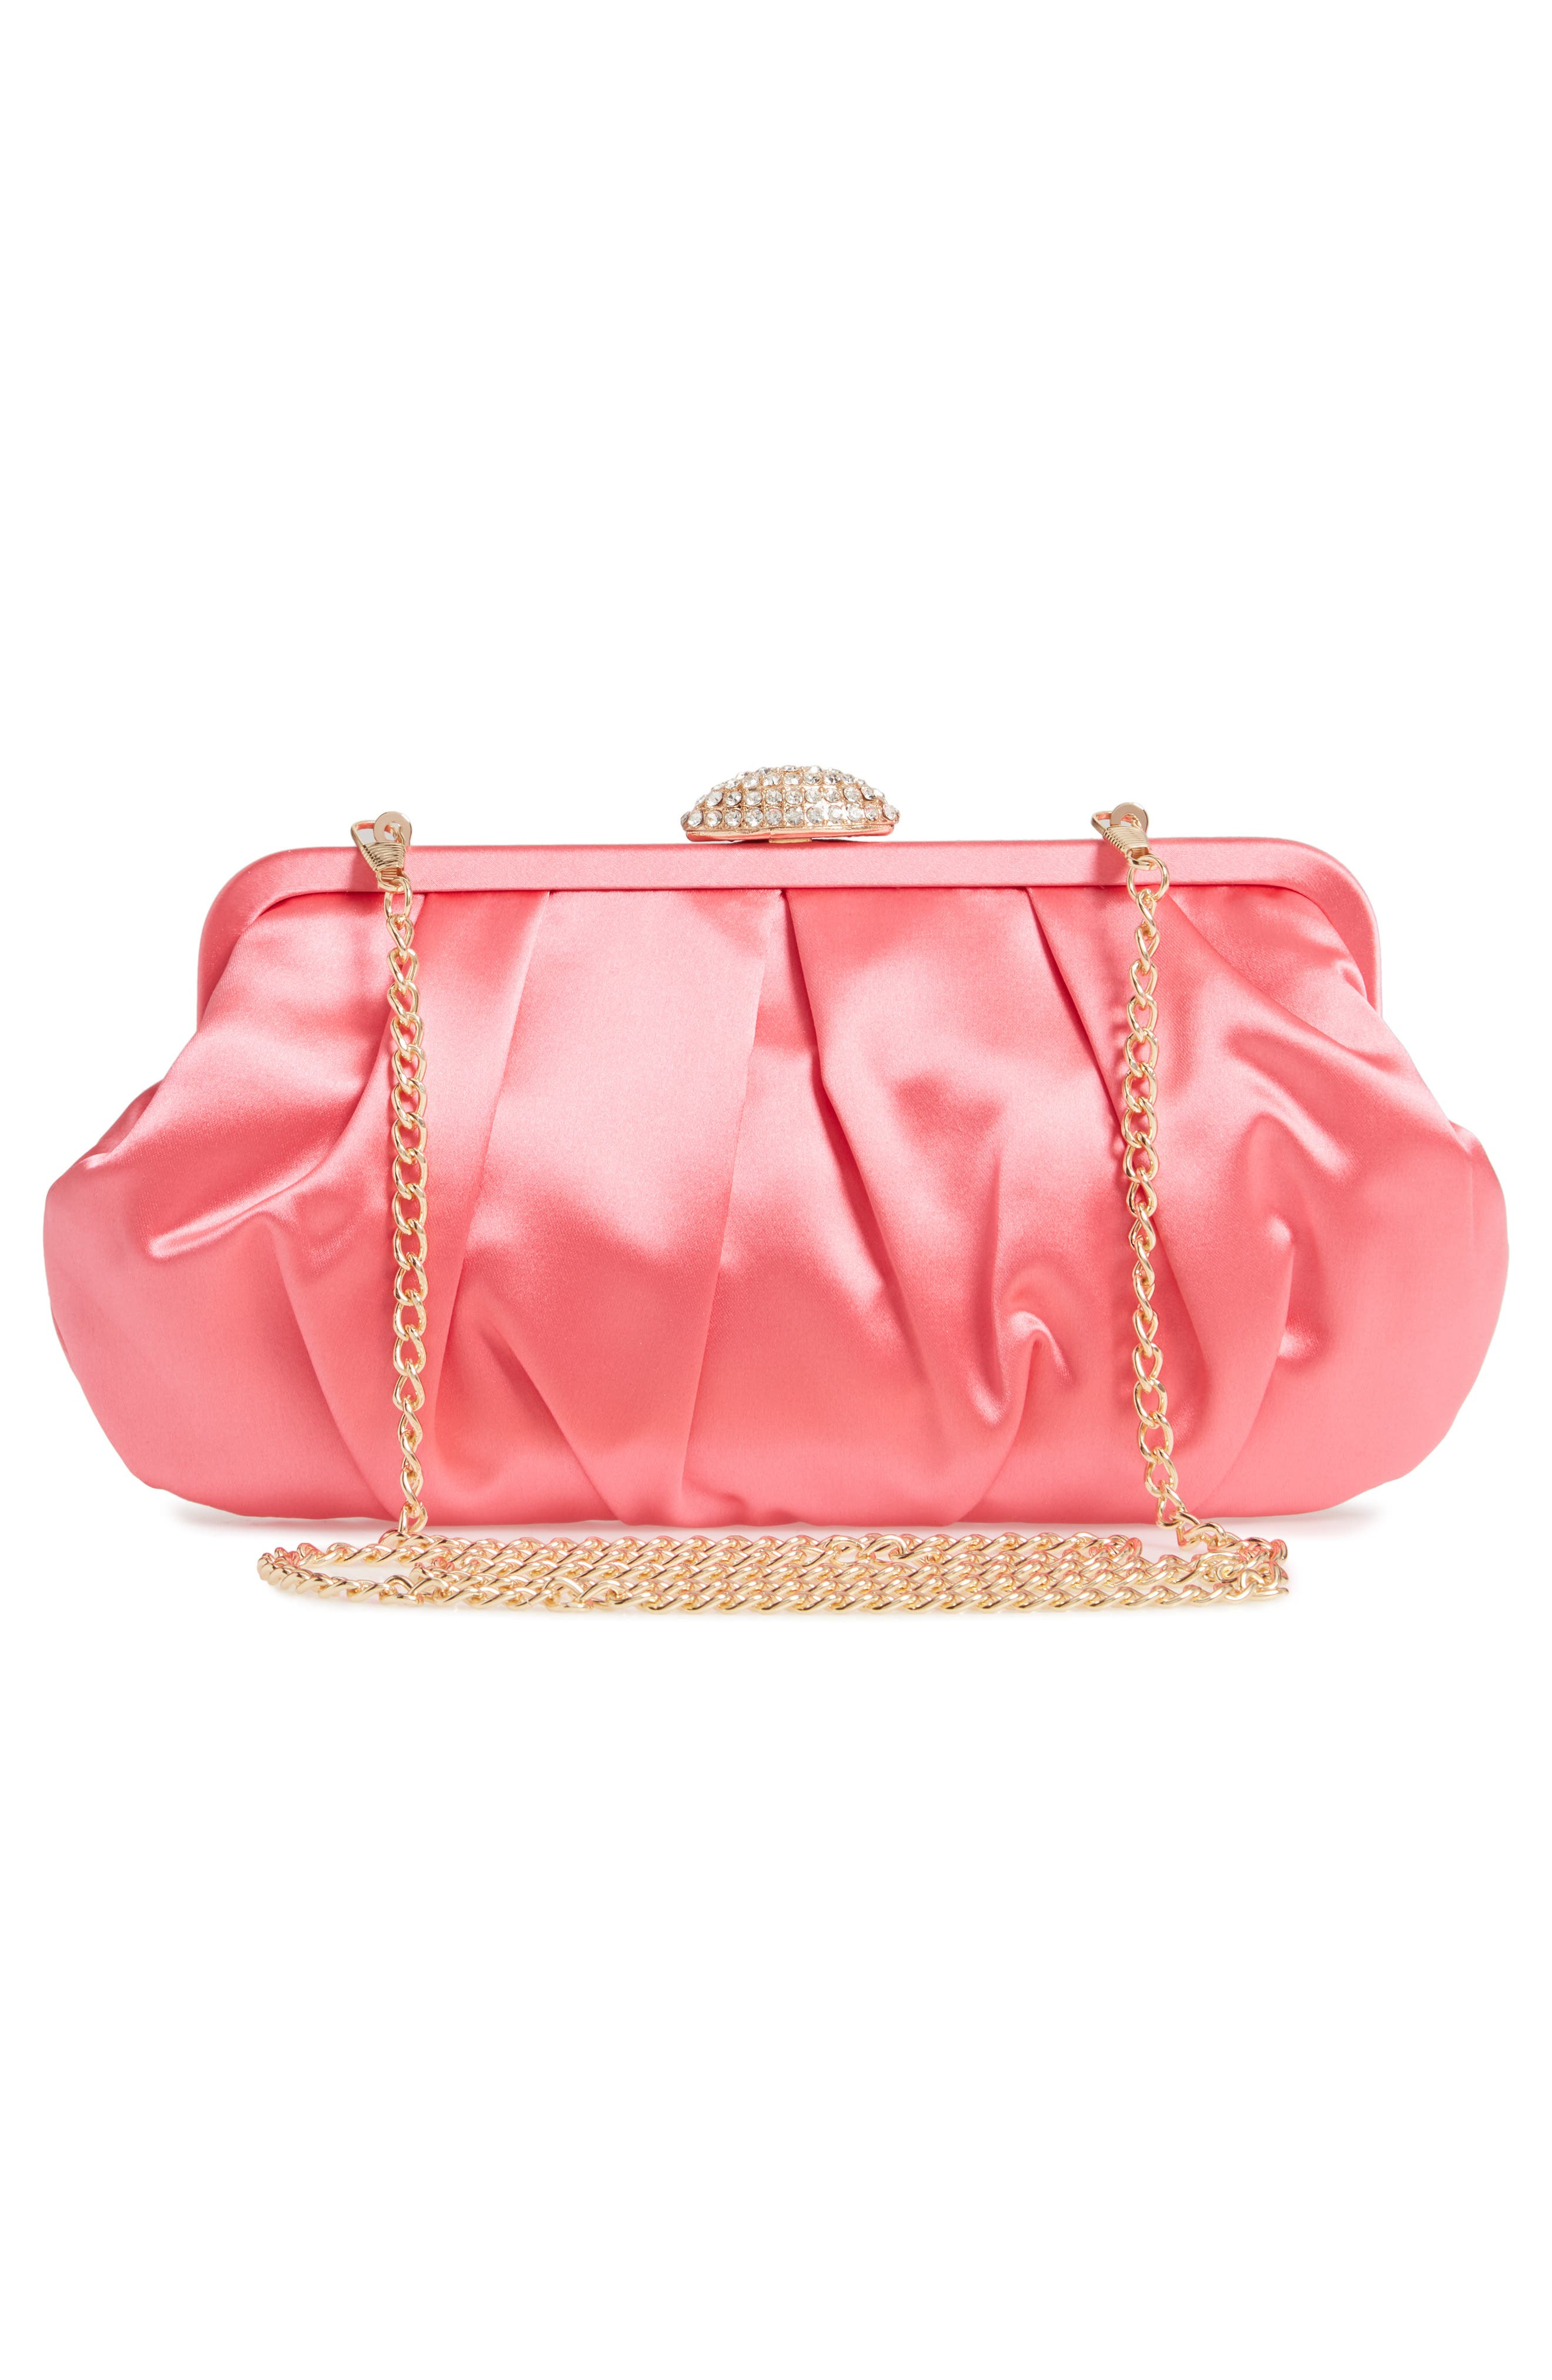 NINA, Concord Pleated Satin Frame Clutch, Alternate thumbnail 3, color, STRAWBERRY PUNCH